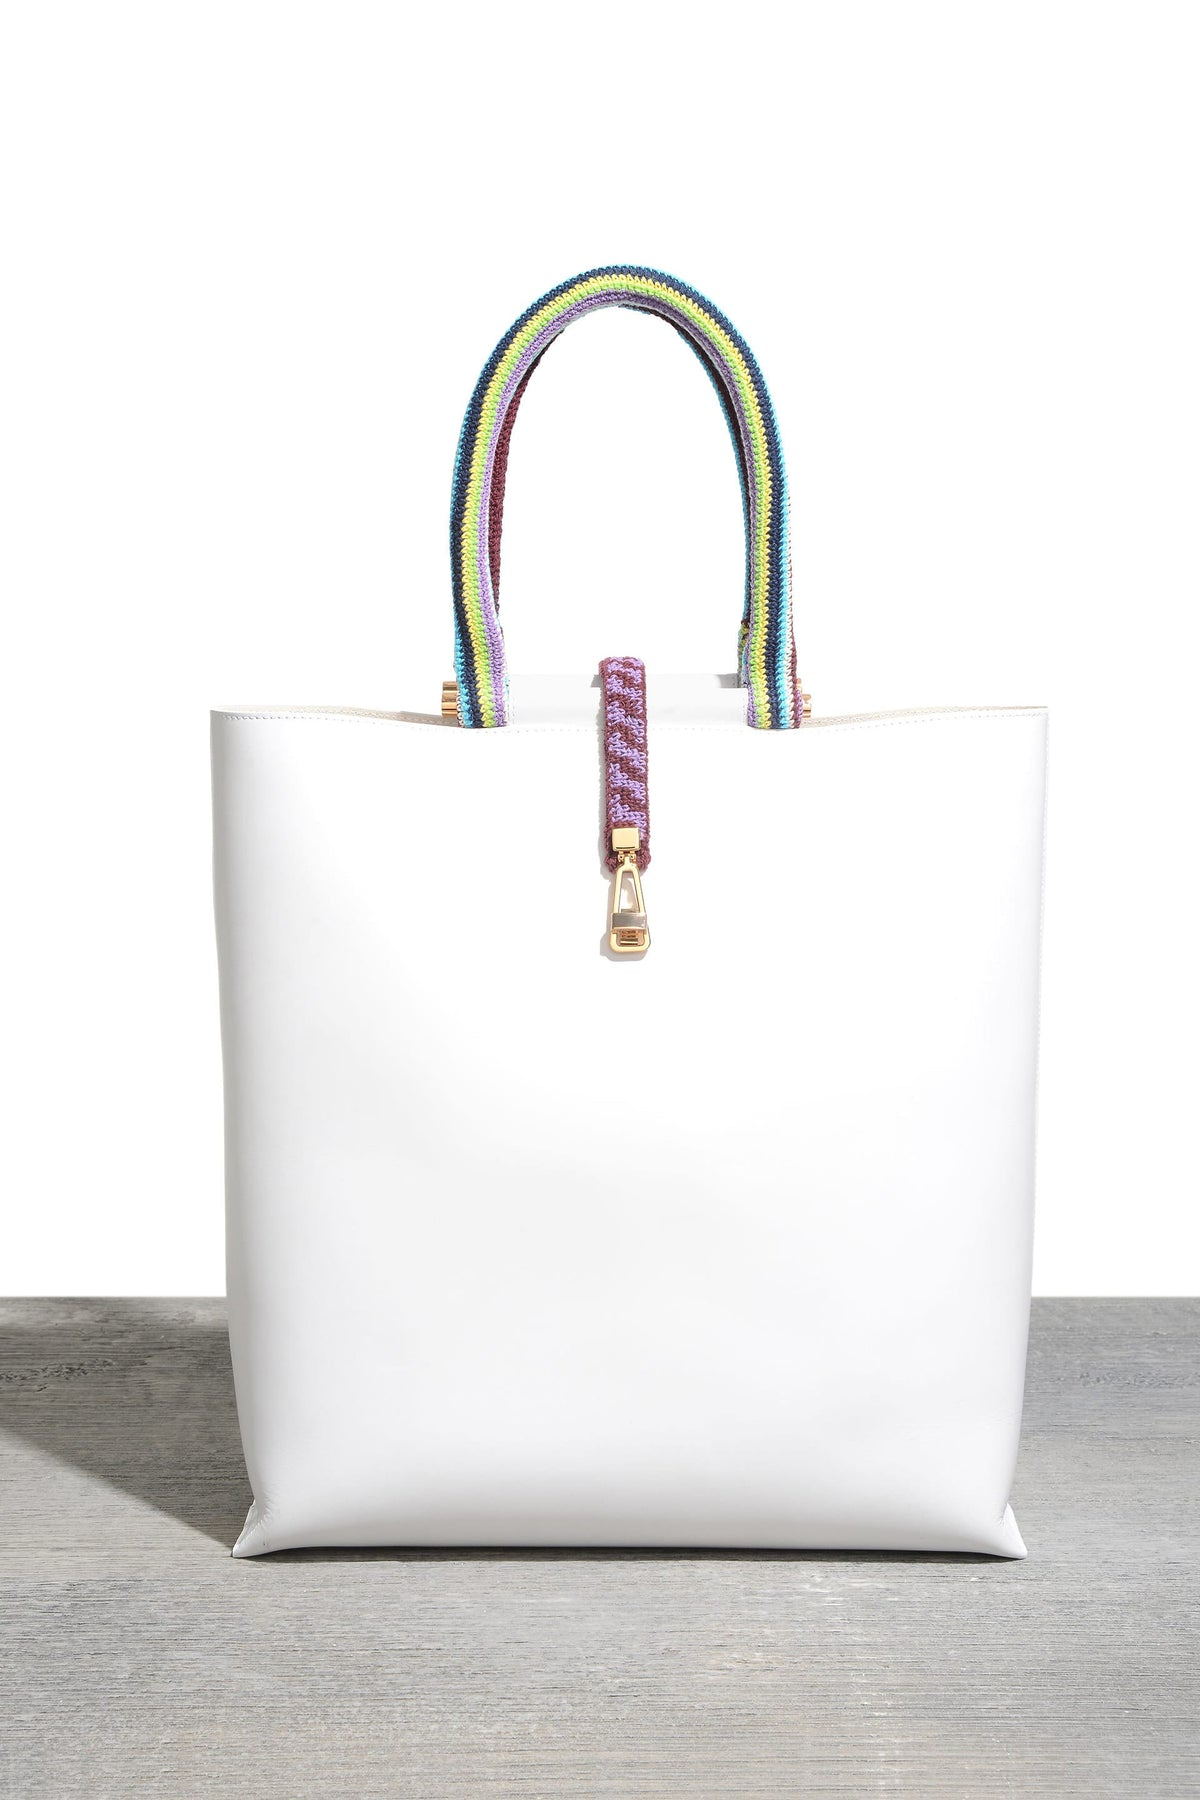 Vevers Tote with Crocheted Handle